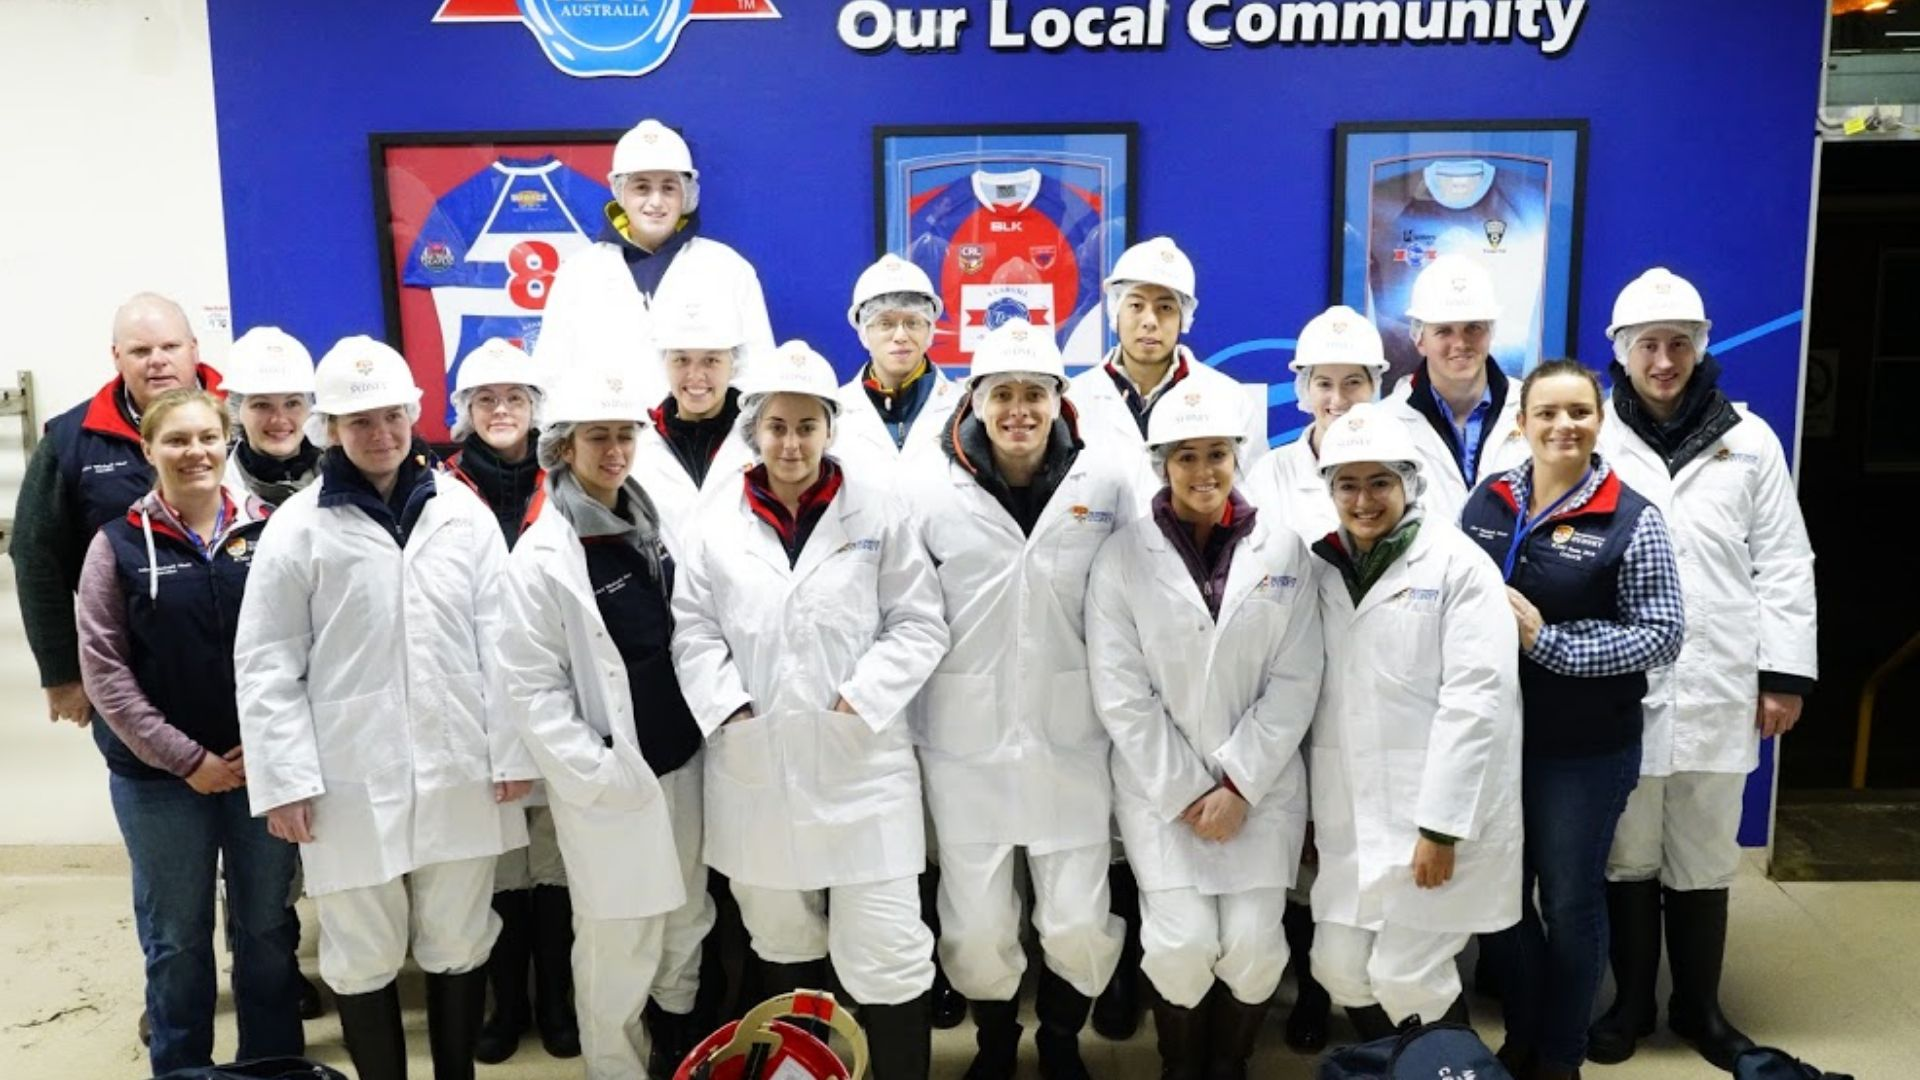 Charles Sturt University hosts 30th Intercollegiate Meat Judging conference